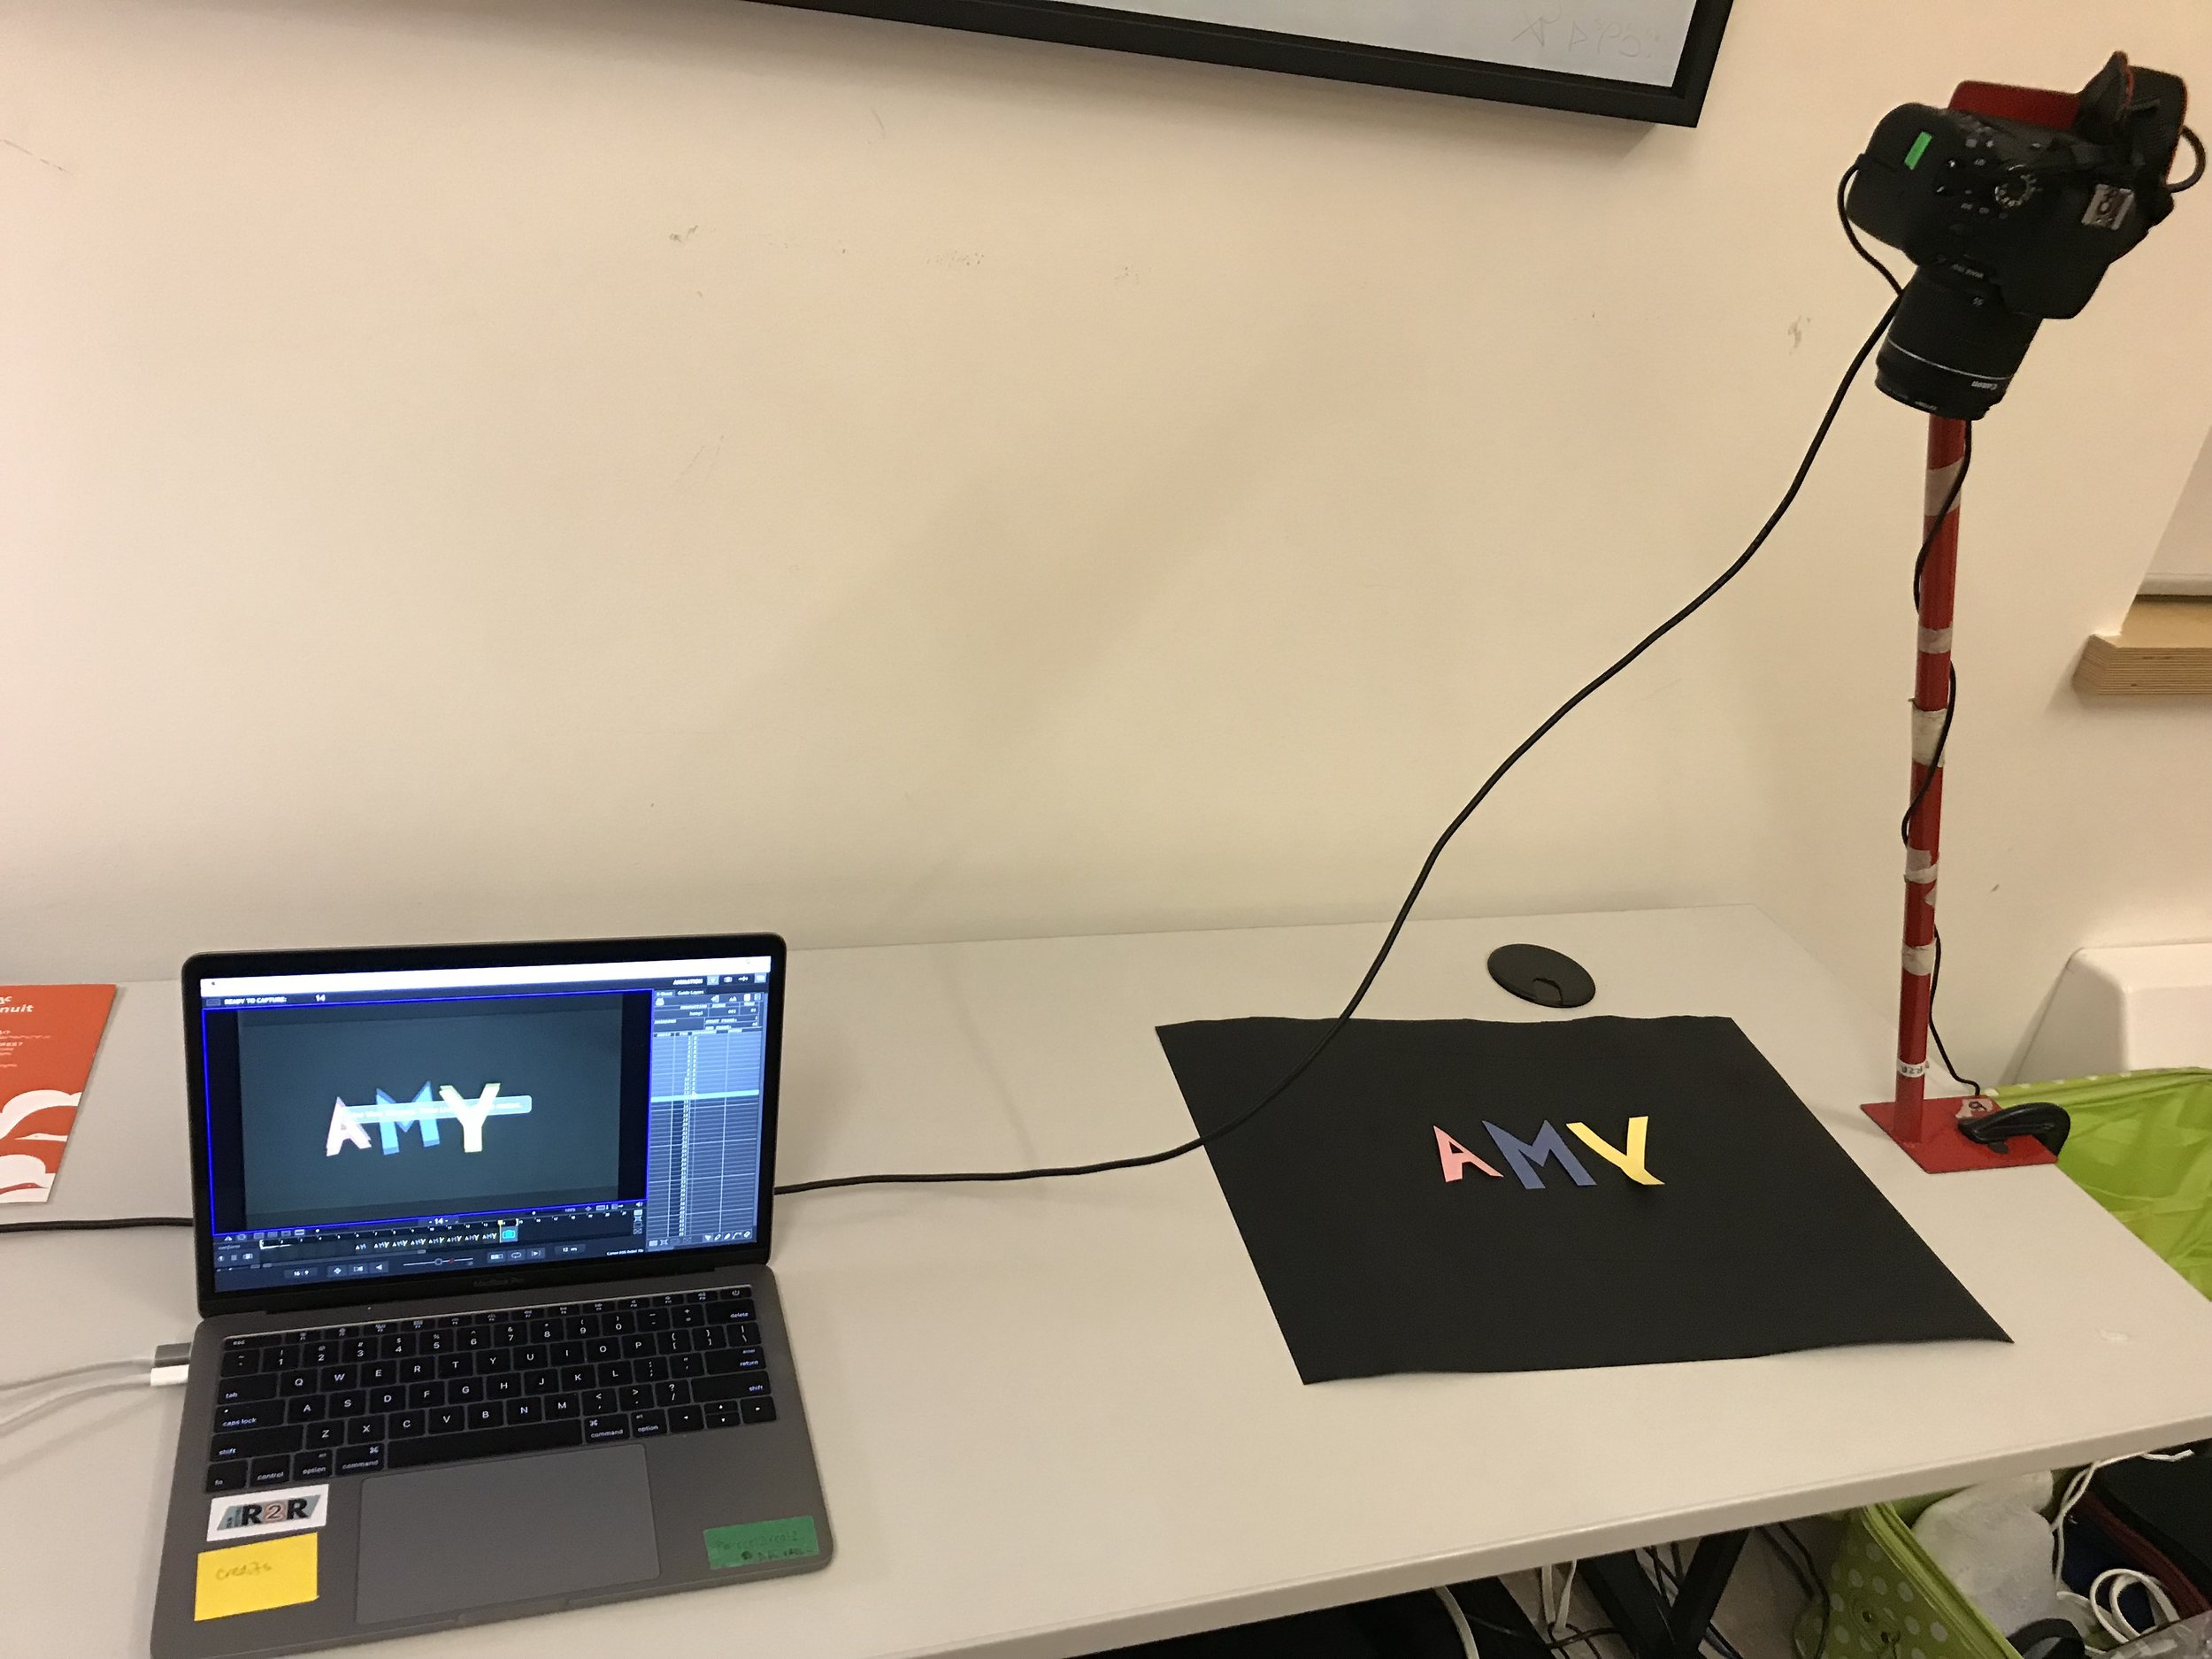 A place to animate! So excited to make films!